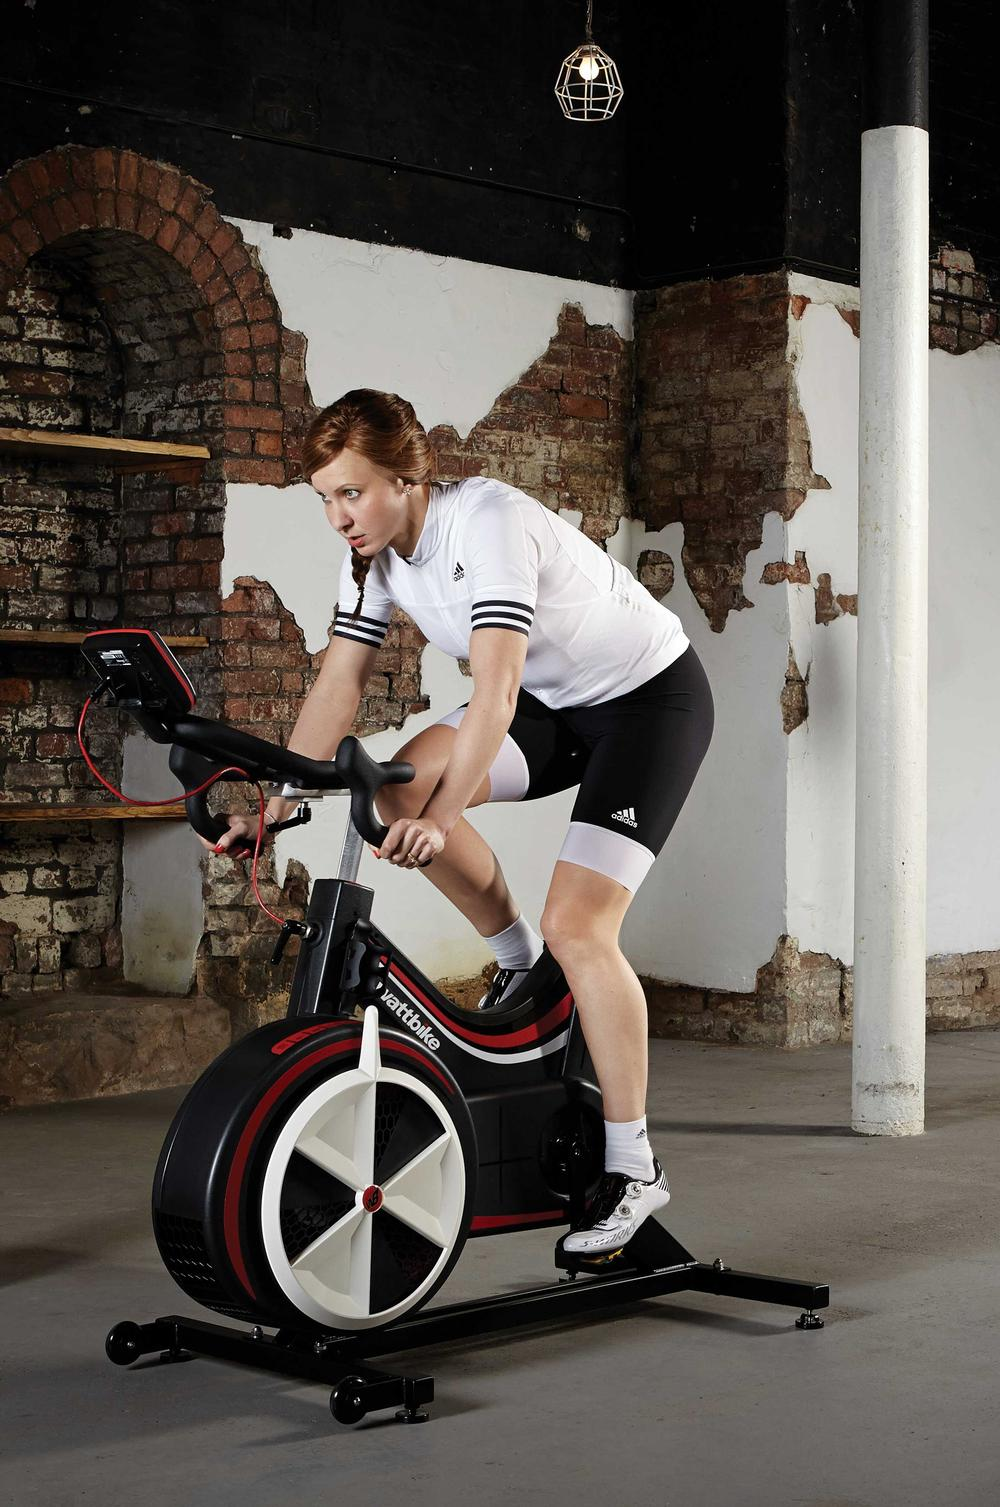 Cyclist Joanna Rowsell Shand has used the Wattbike for two years